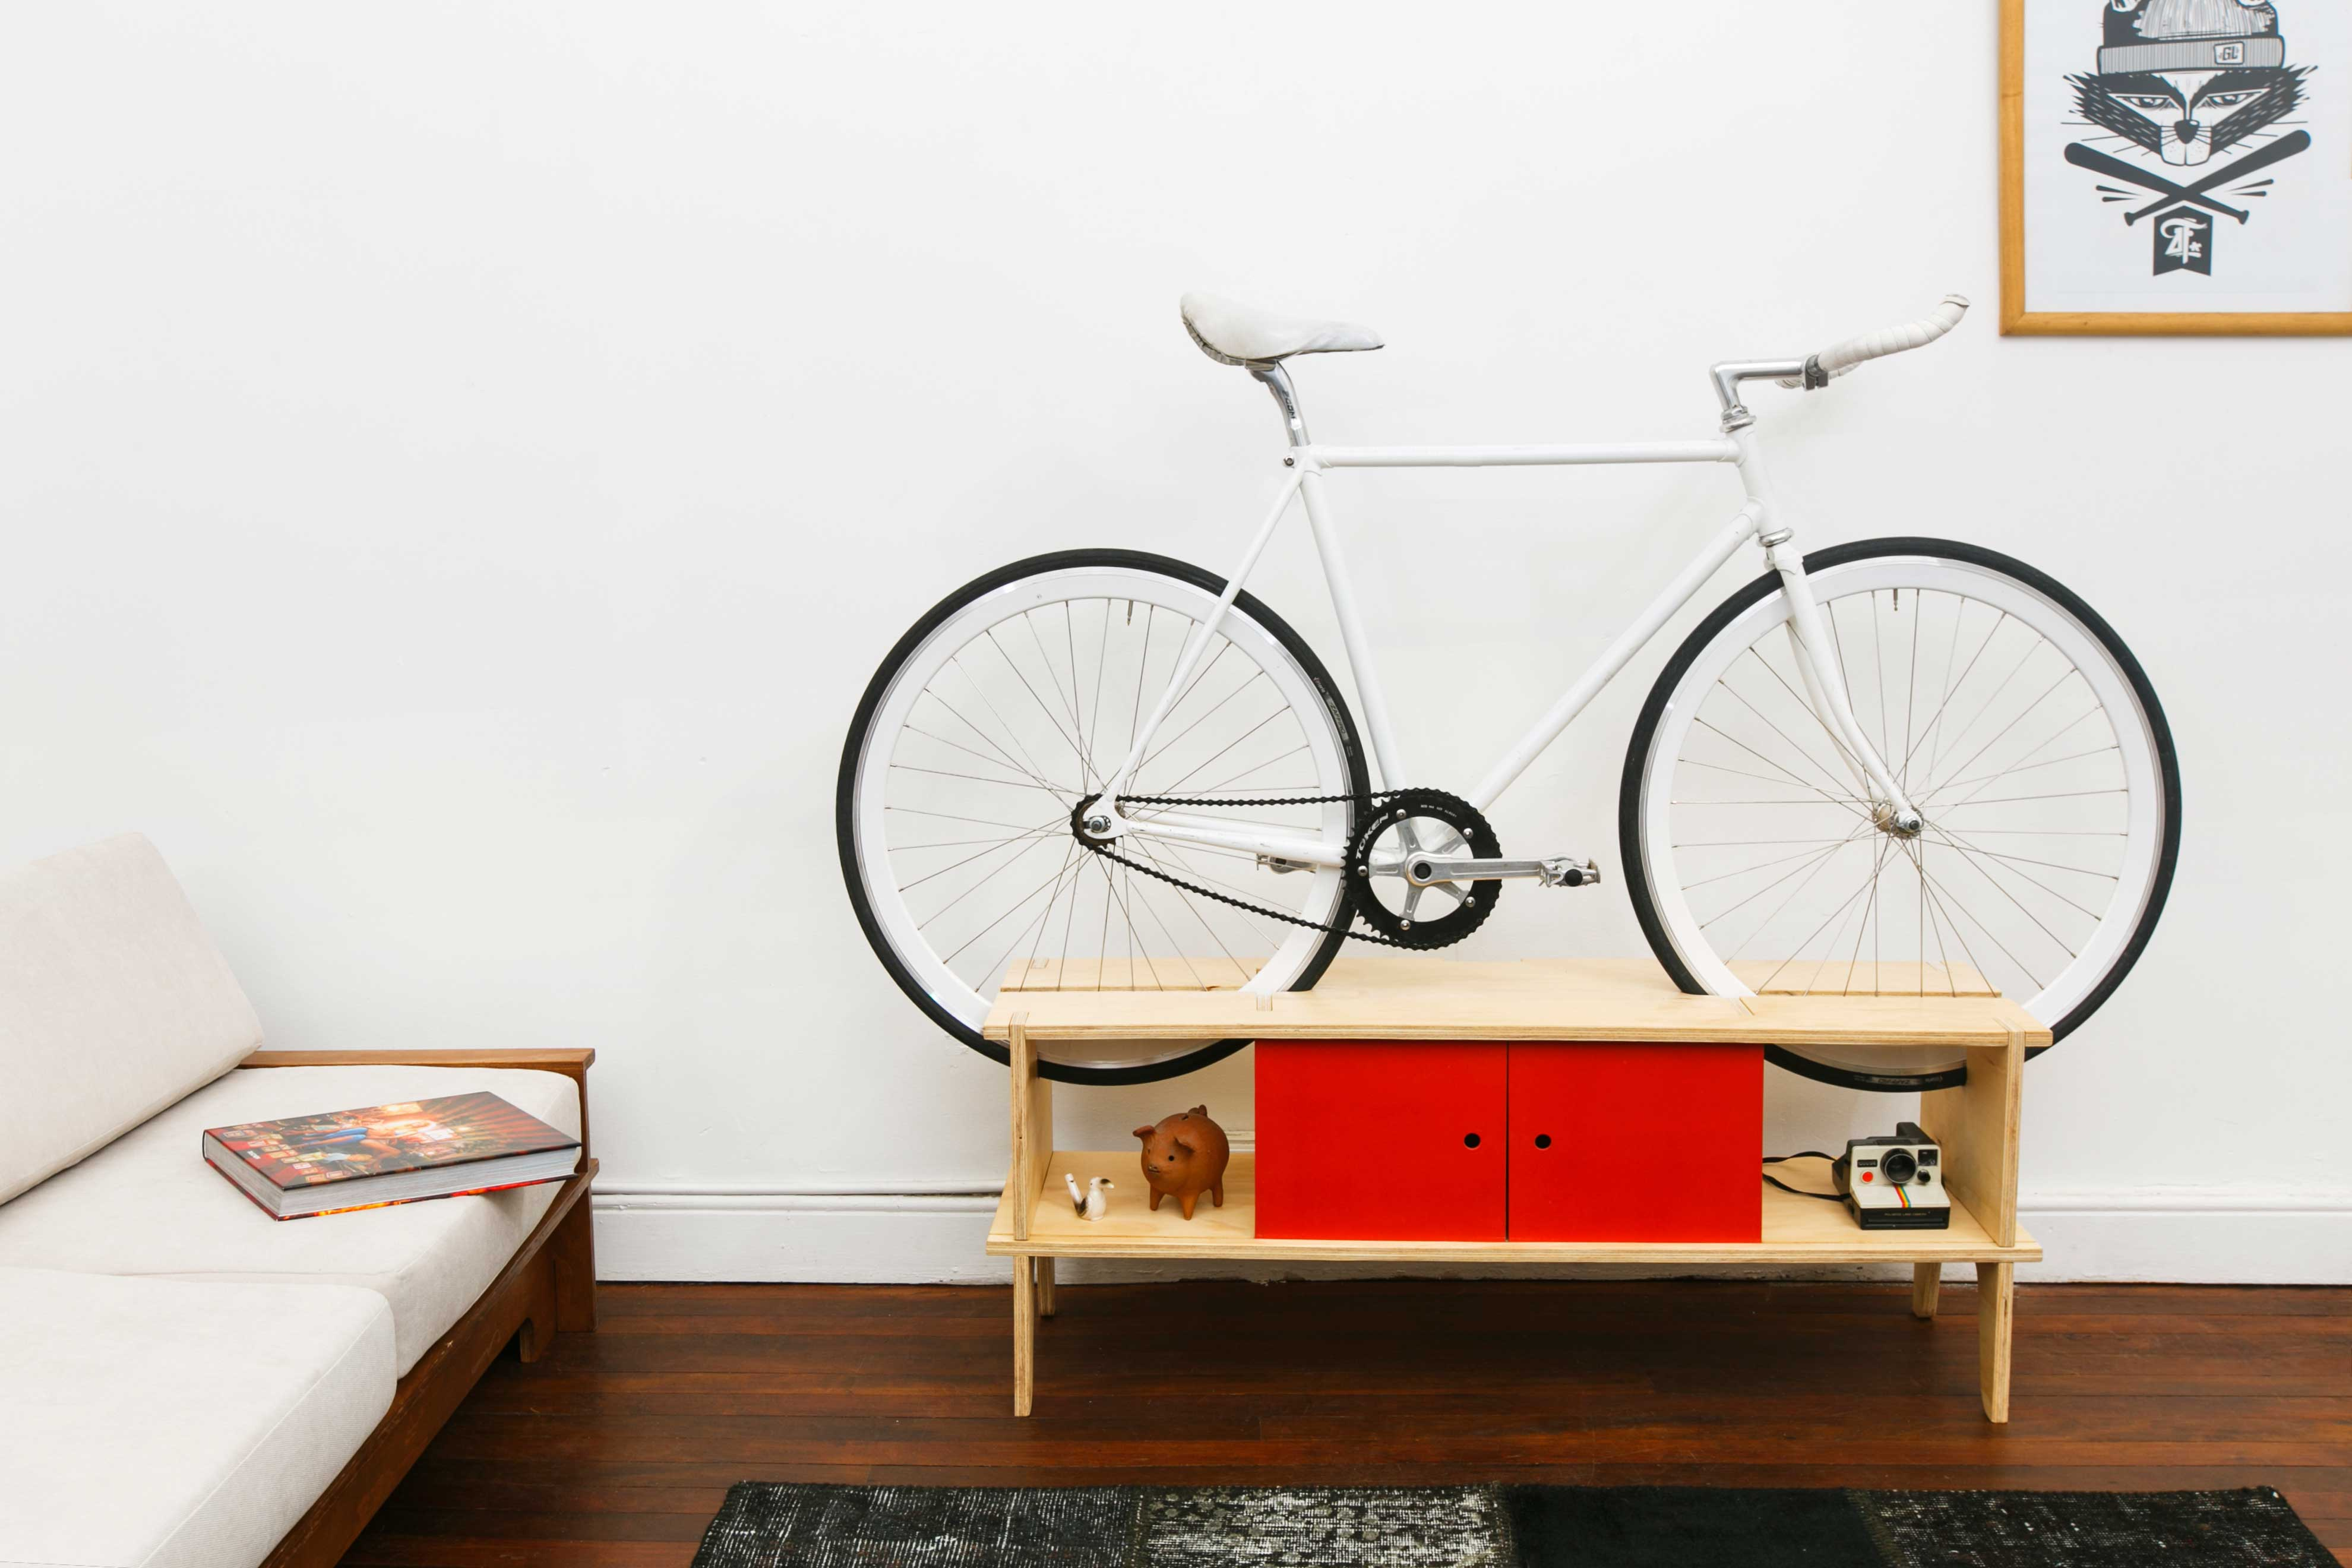 organize bicycle that house pin for ceiling com follow bike rack ideas will bikeengines more entire your storage pics great